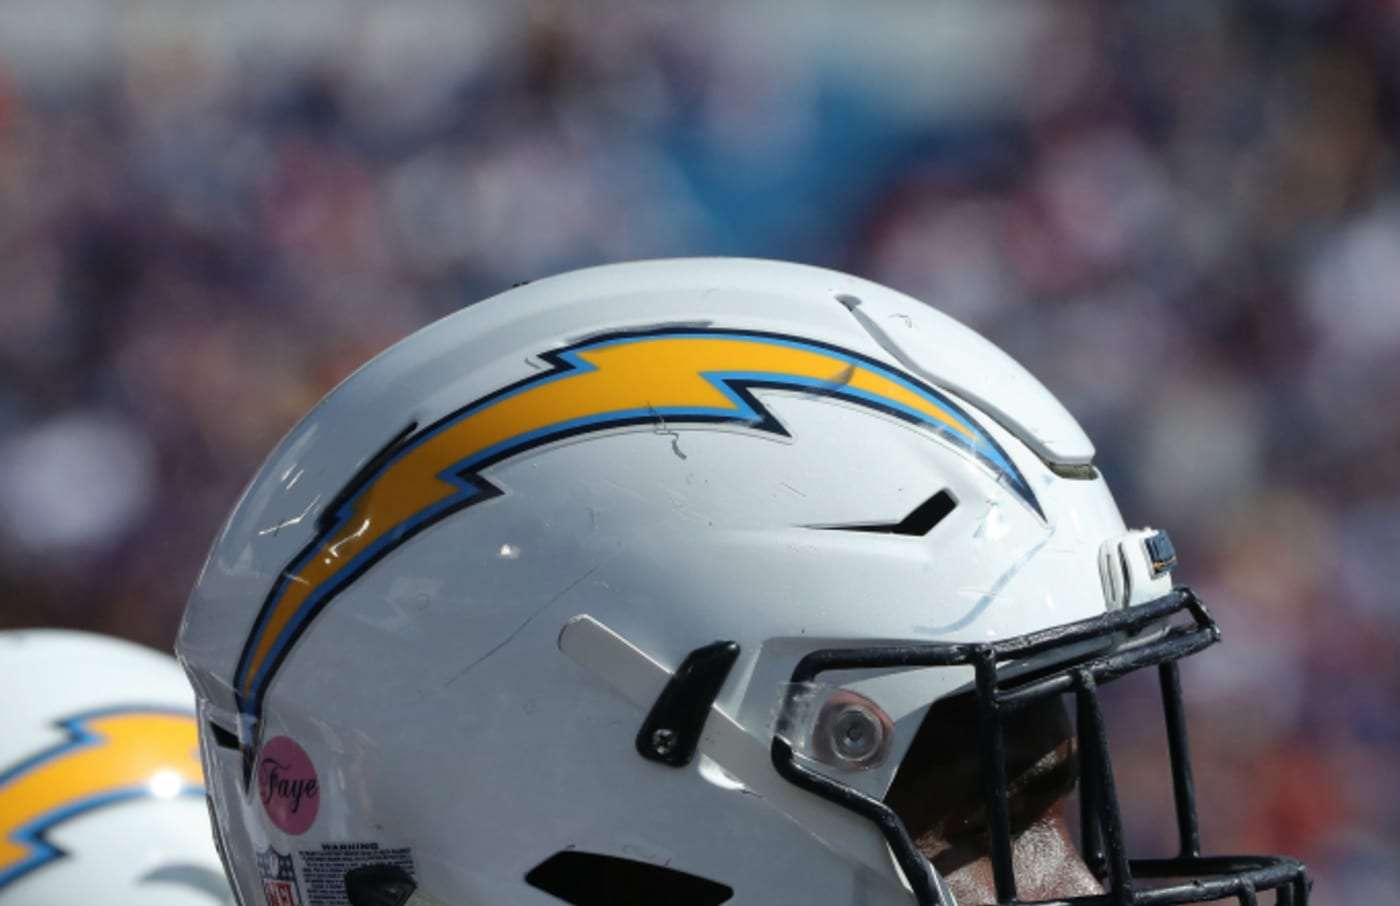 A detailed view of the Chargers logo